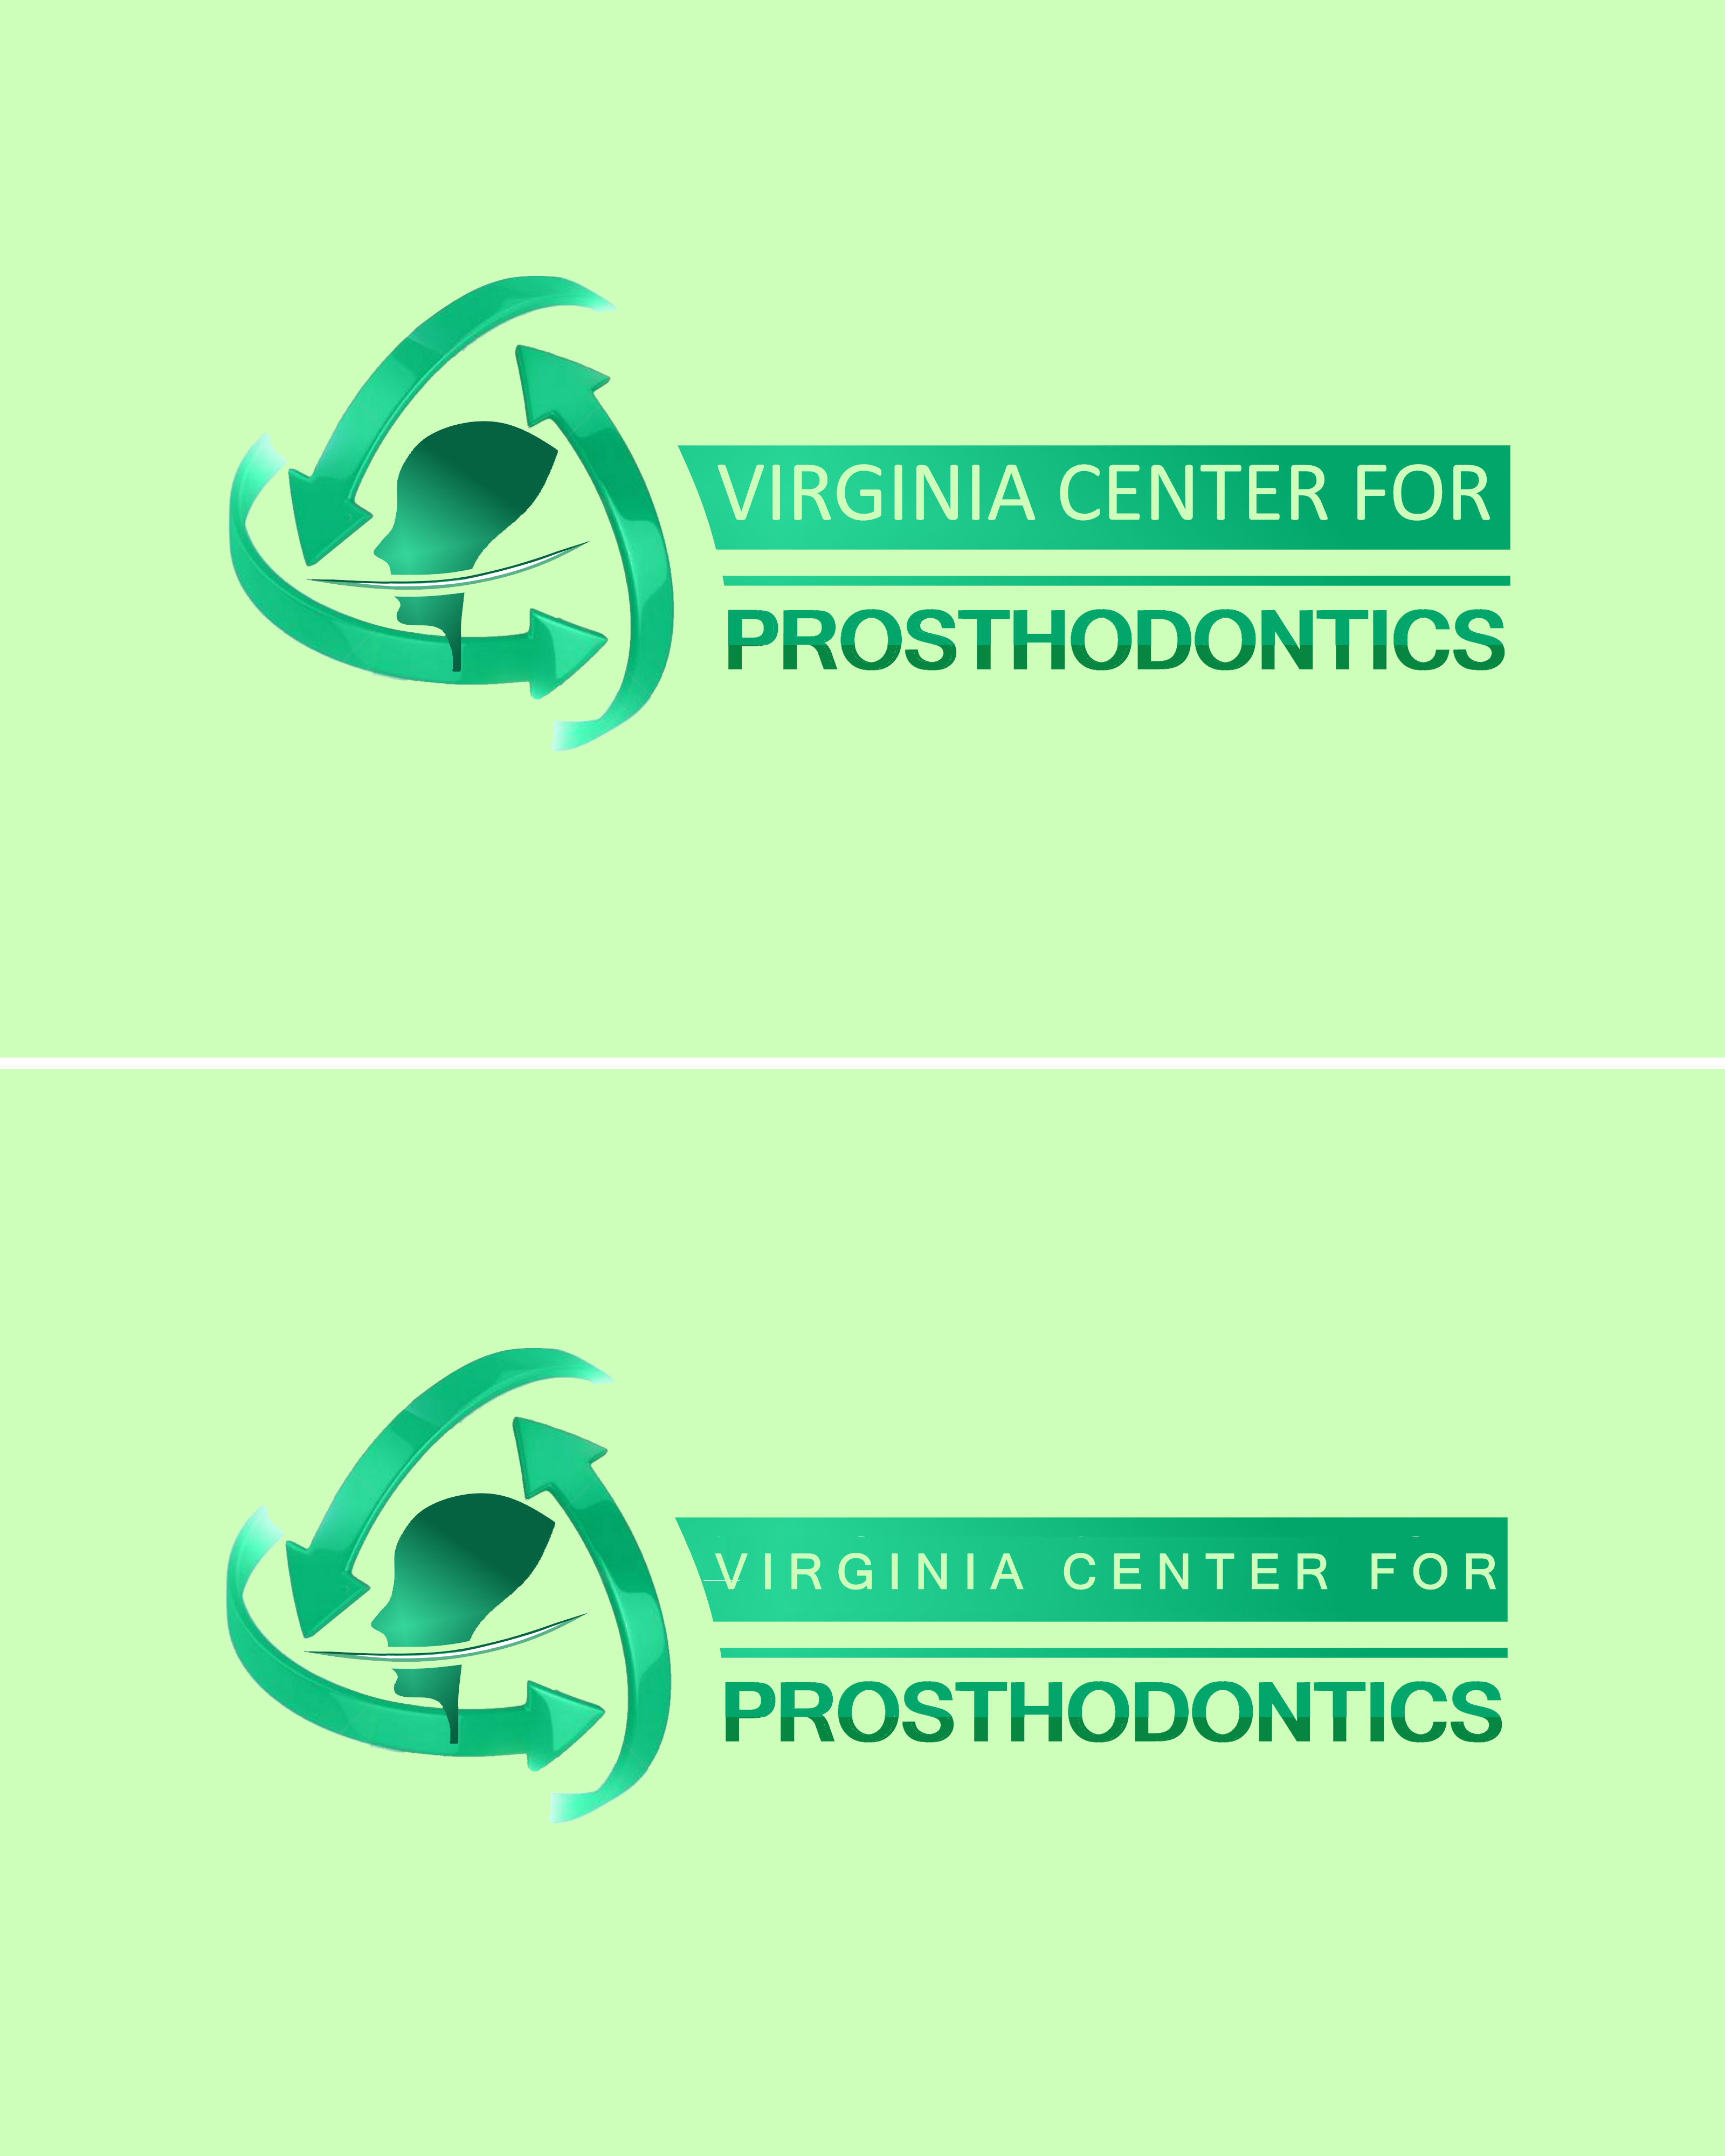 Logo Design by Roberto Bassi - Entry No. 107 in the Logo Design Contest Imaginative Logo Design for Virginia Center for Prosthodontics.